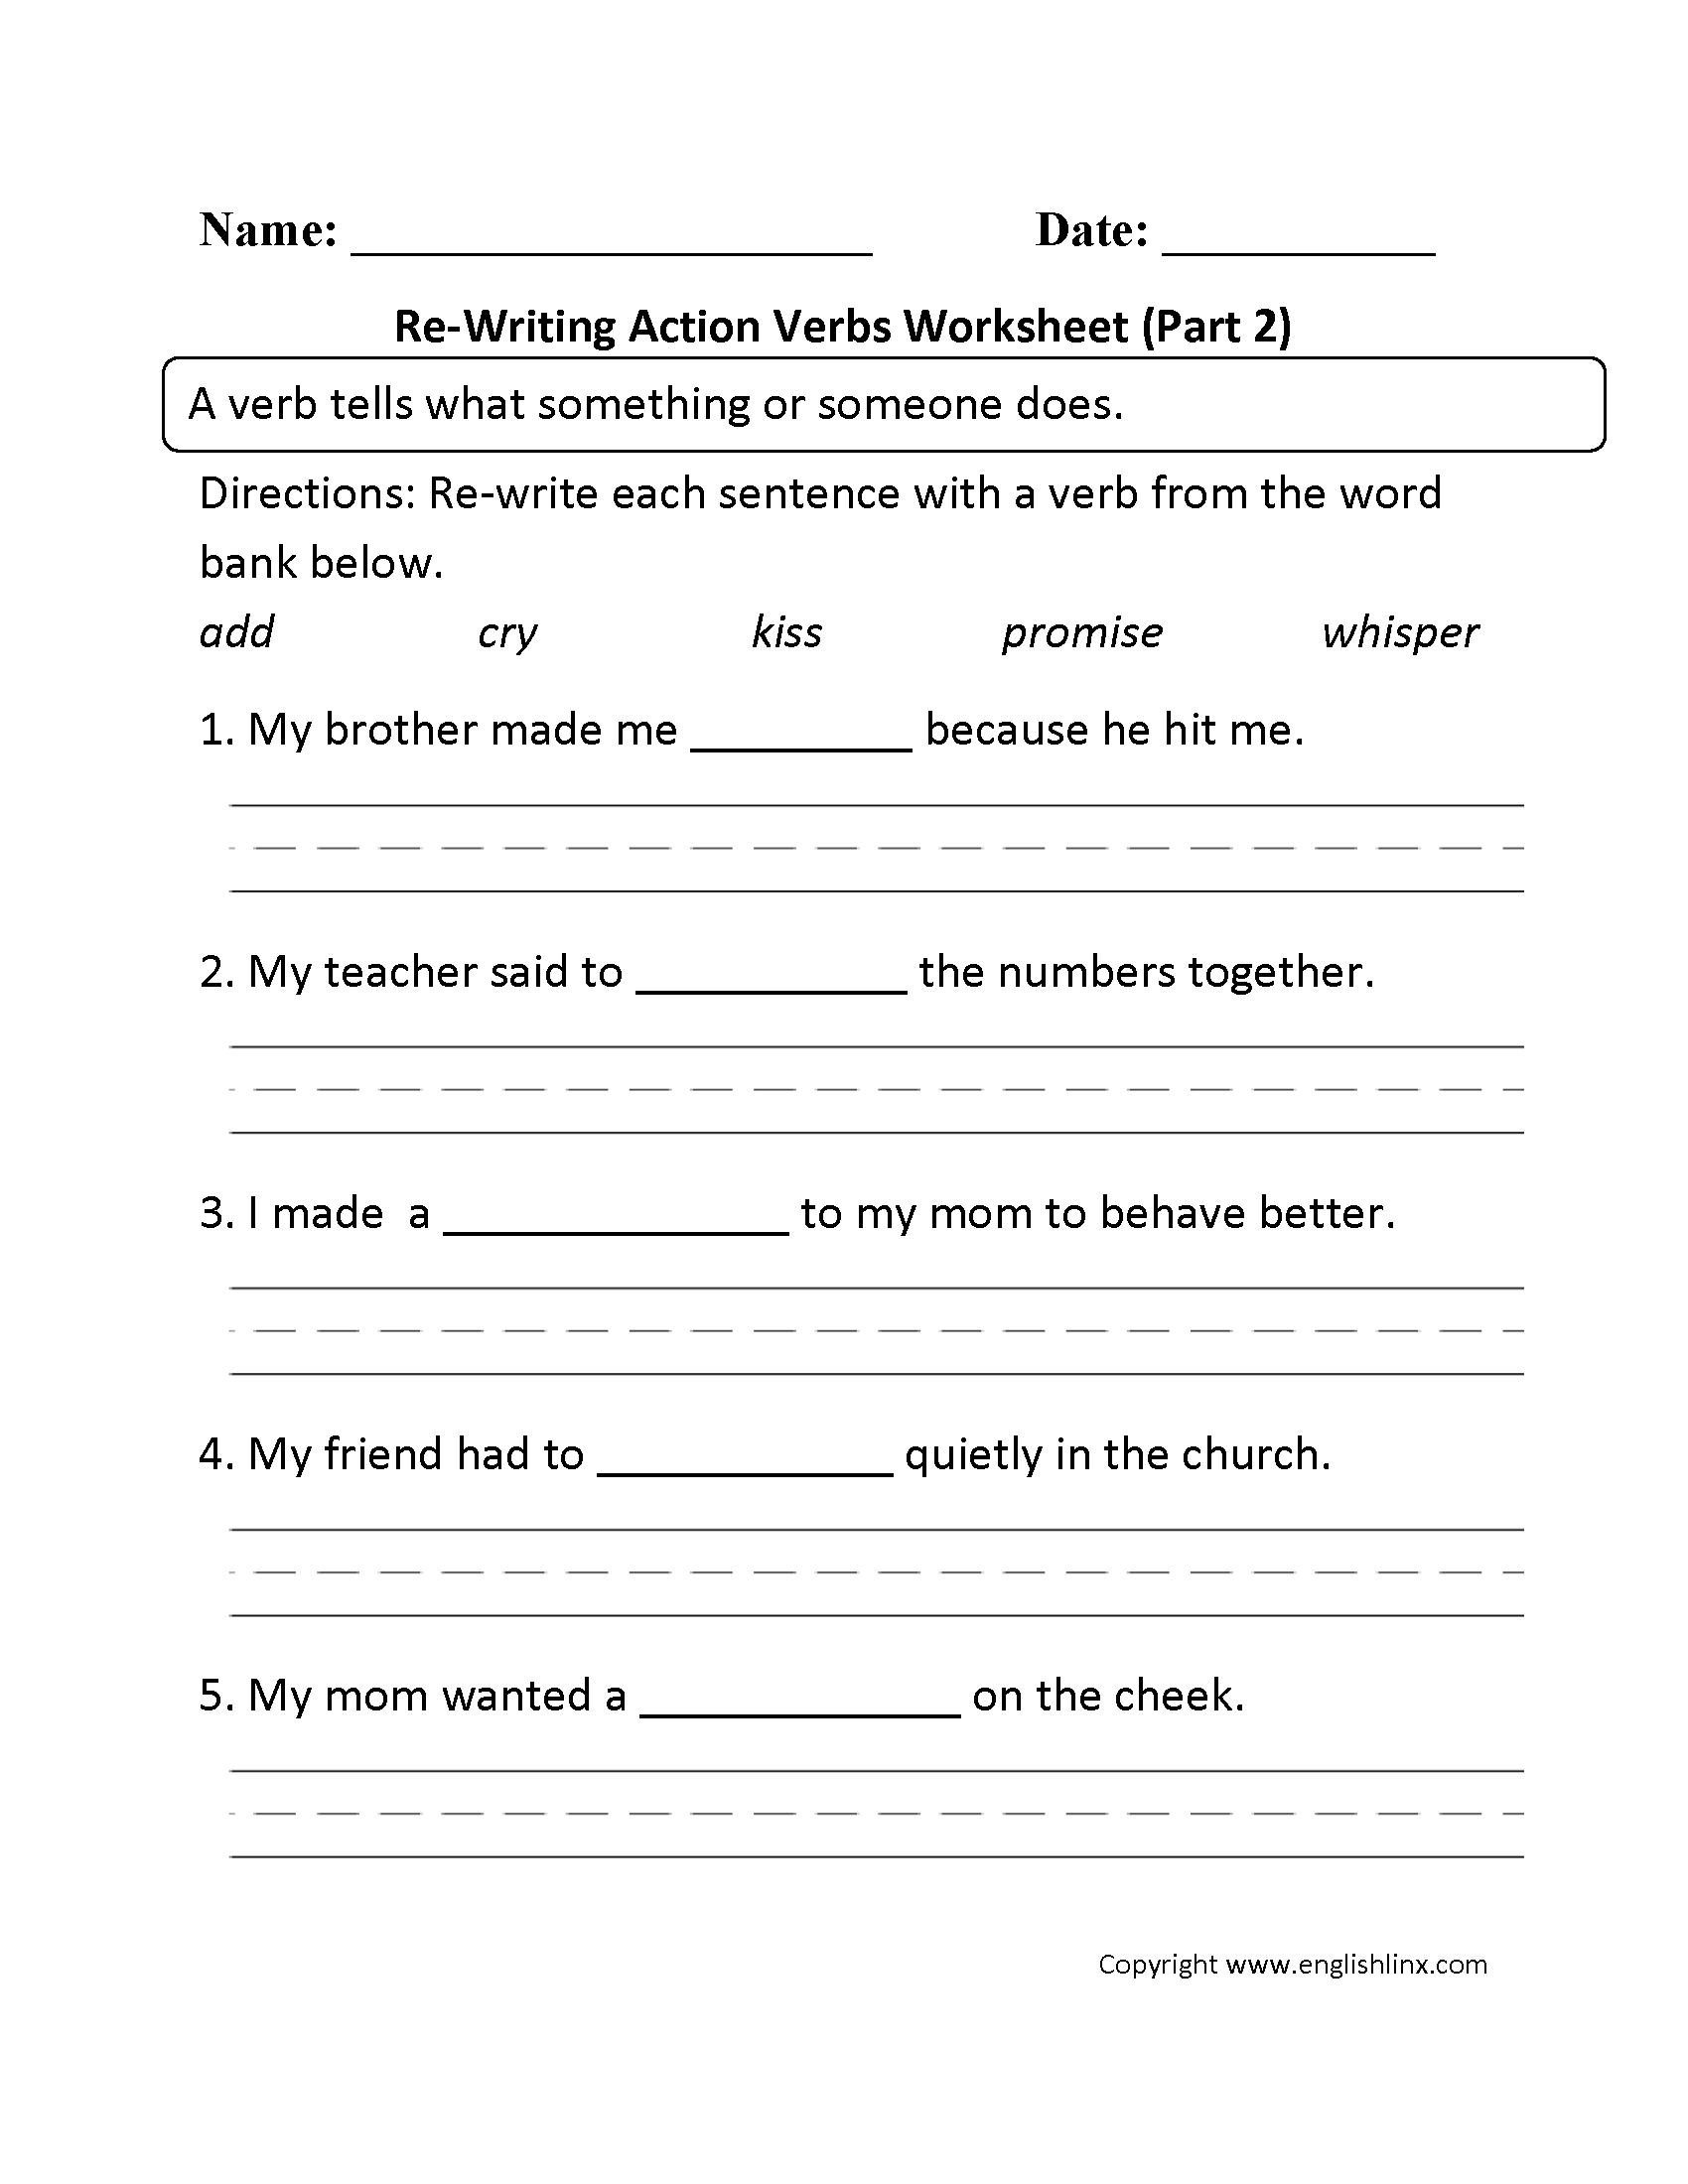 medium resolution of Re-Writing Action Verbs Worksheet Part 2   Action verbs worksheet